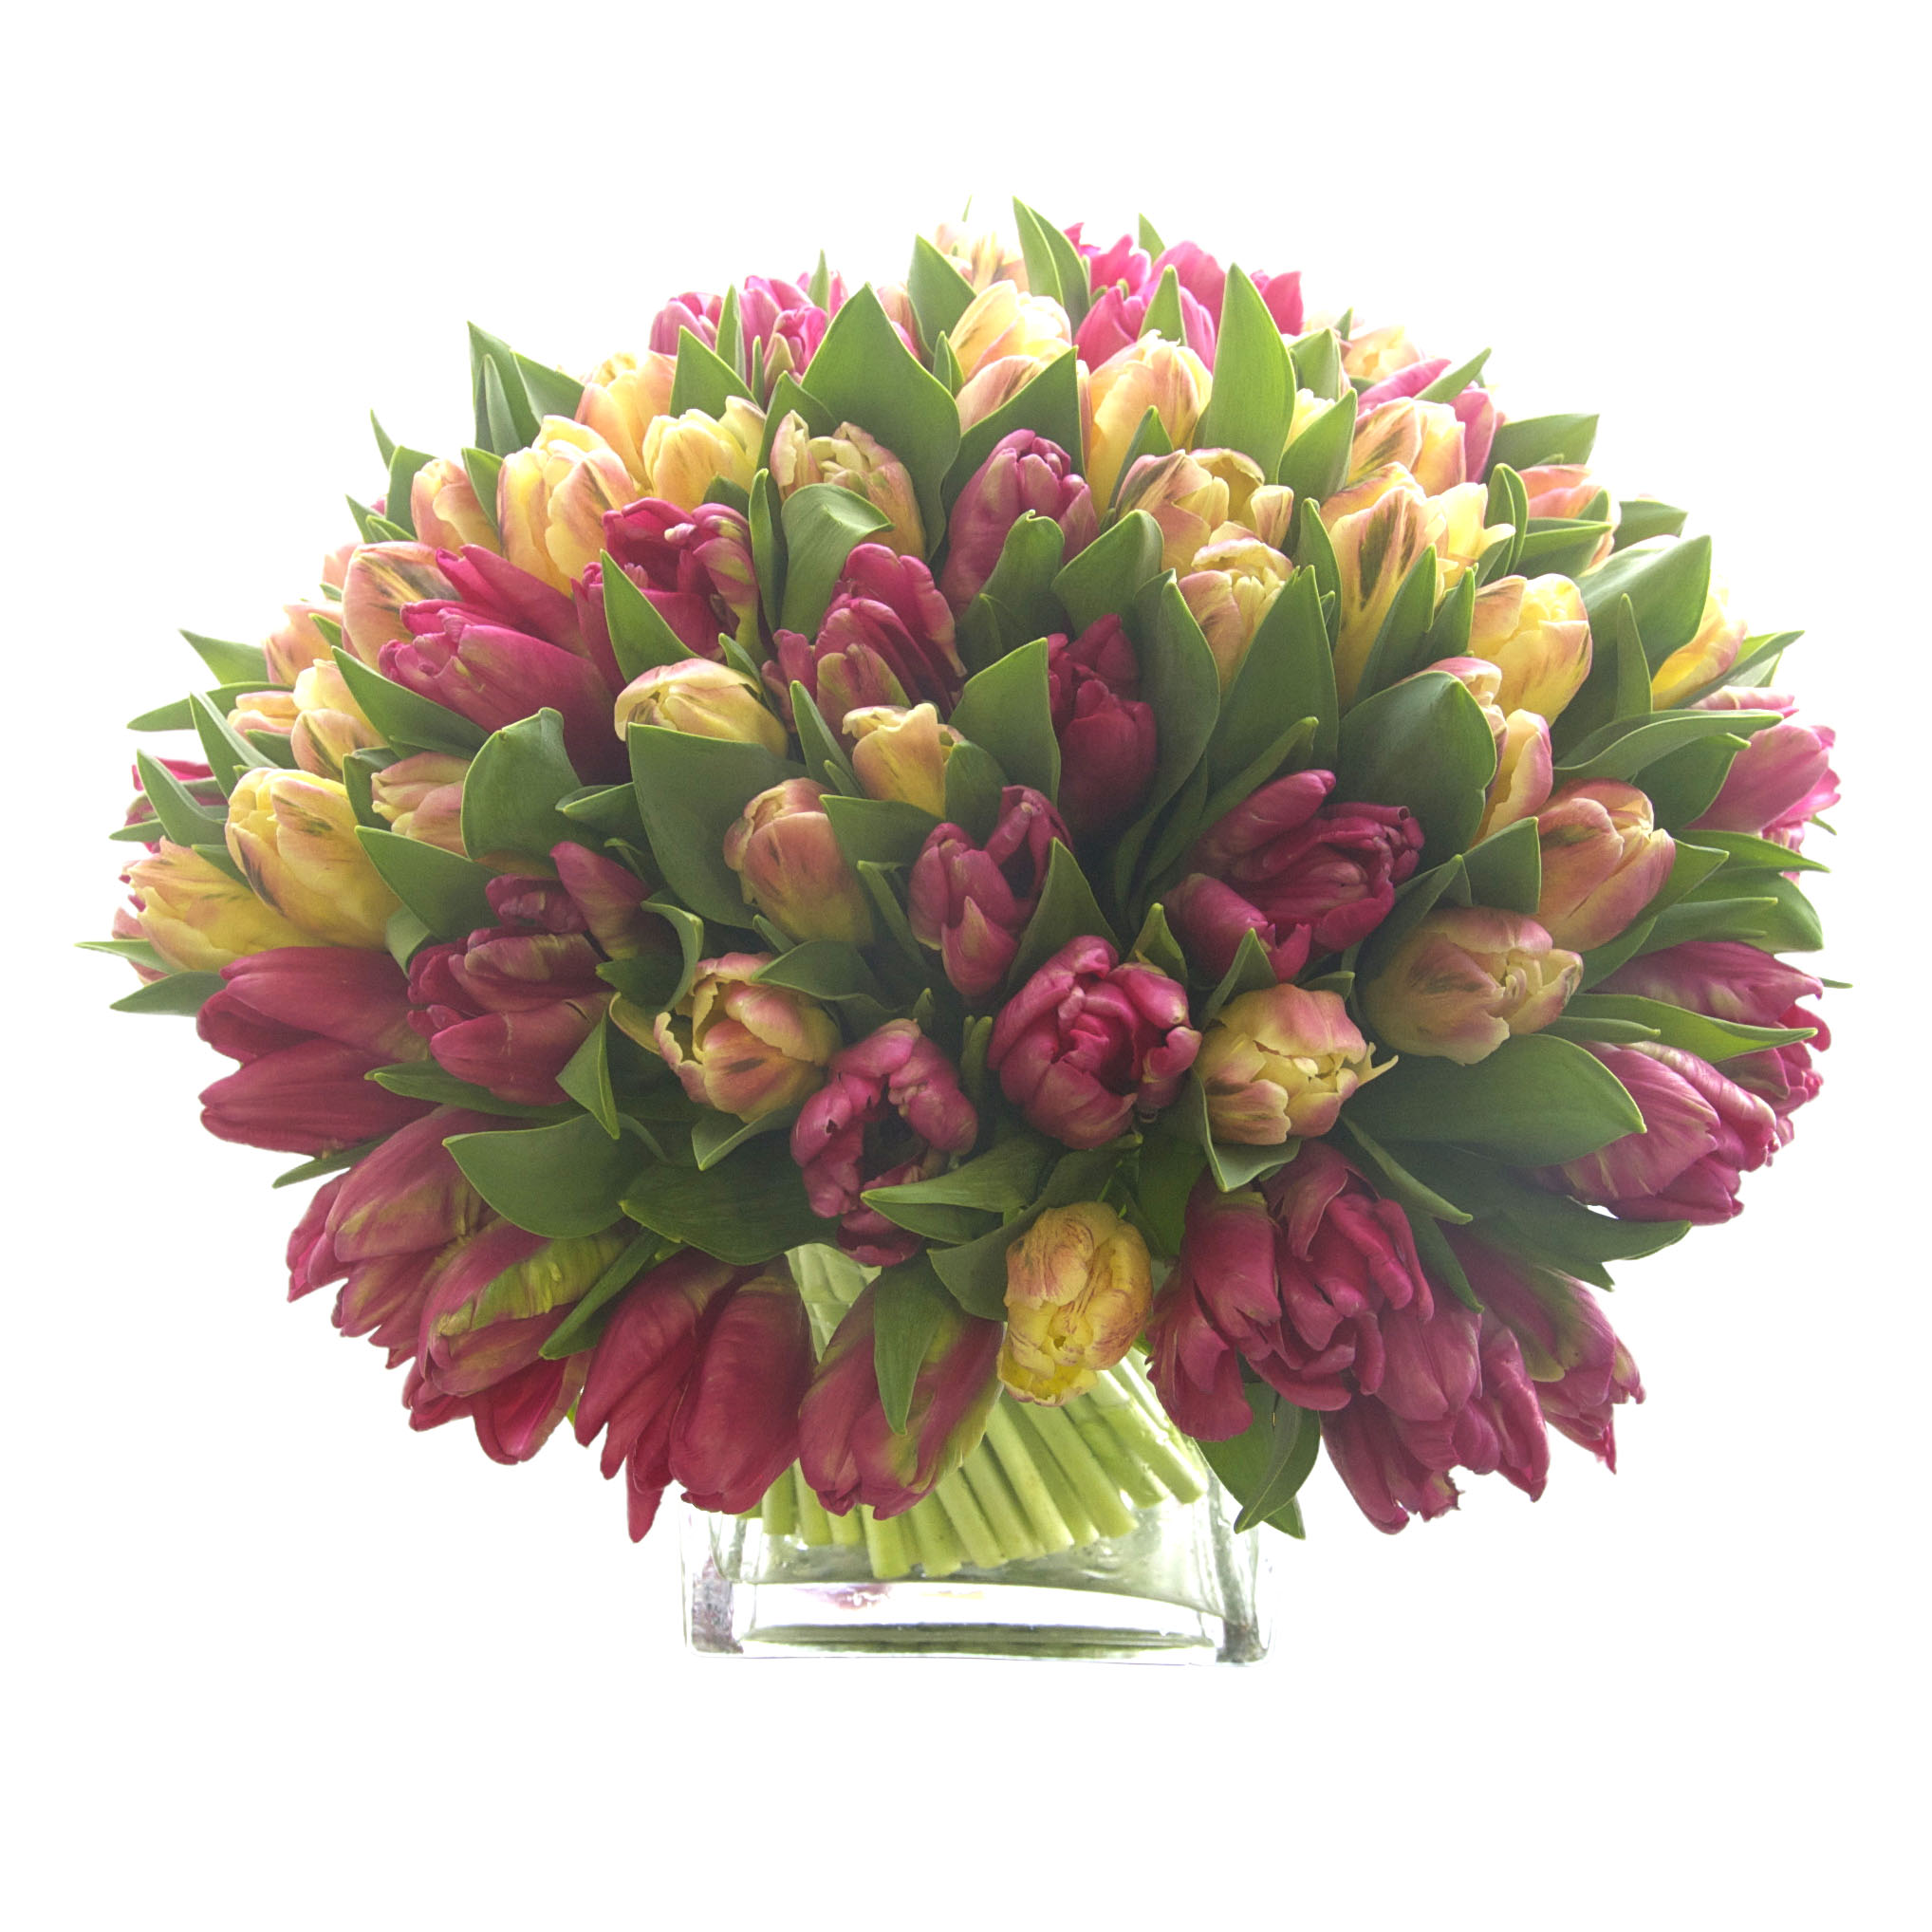 Pink Parrot Tulips Blend